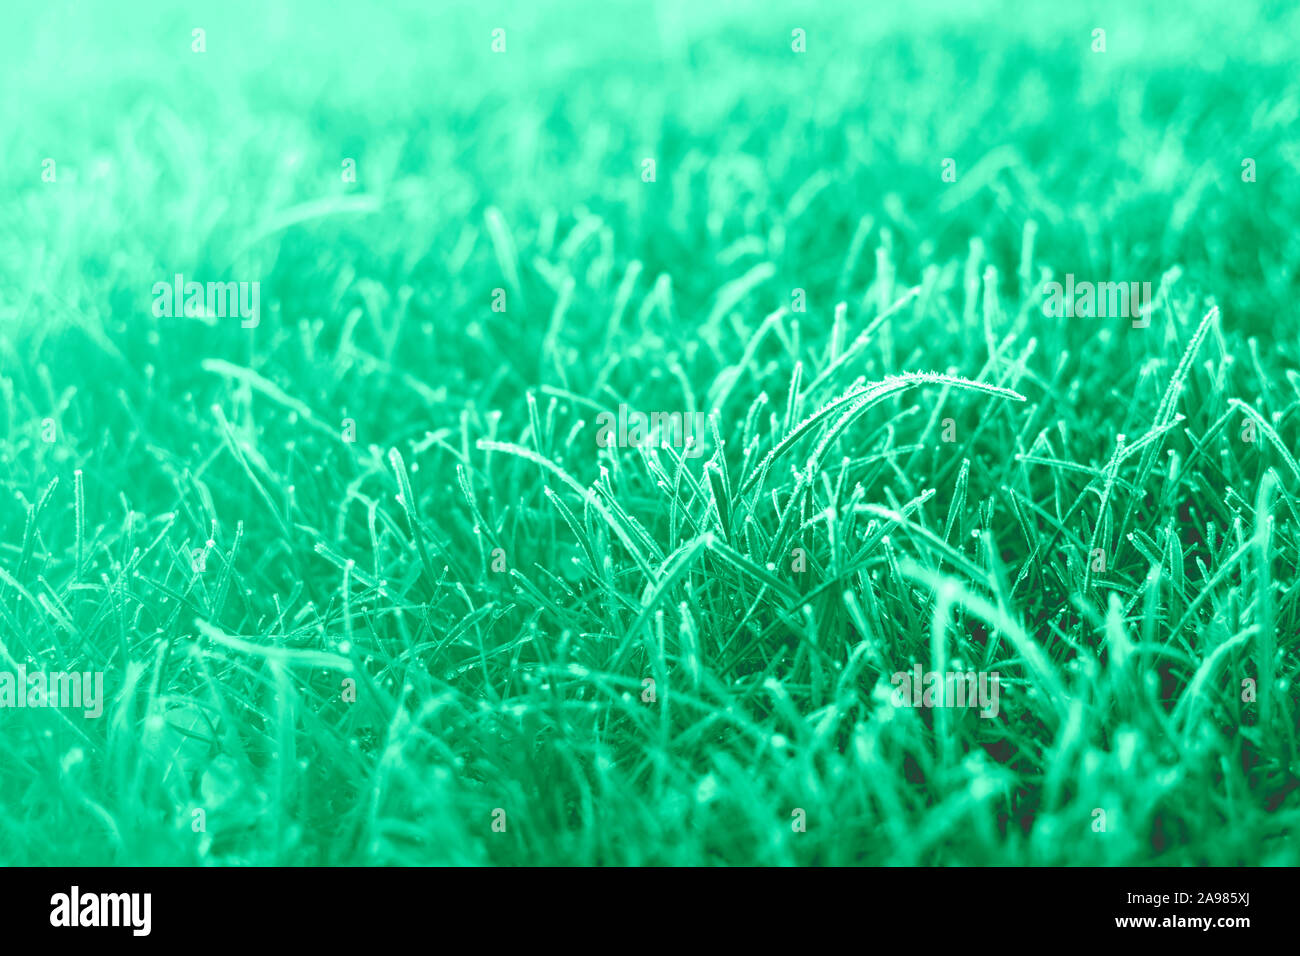 First frosts on green mint grass with beautifully falling light from the sun, late autumn. Natural background. Stock Photo